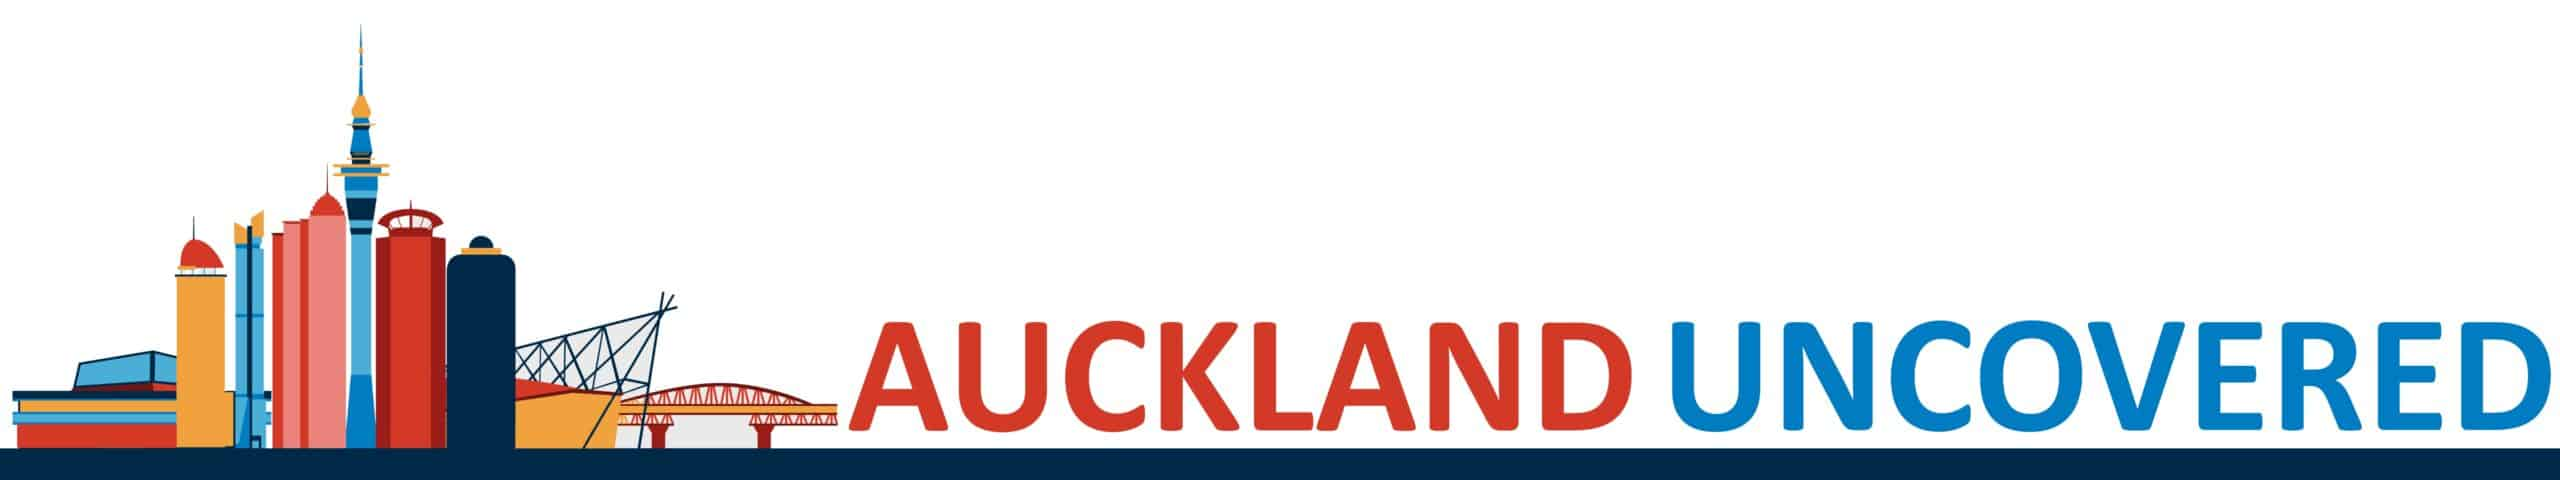 Auckland Uncovered